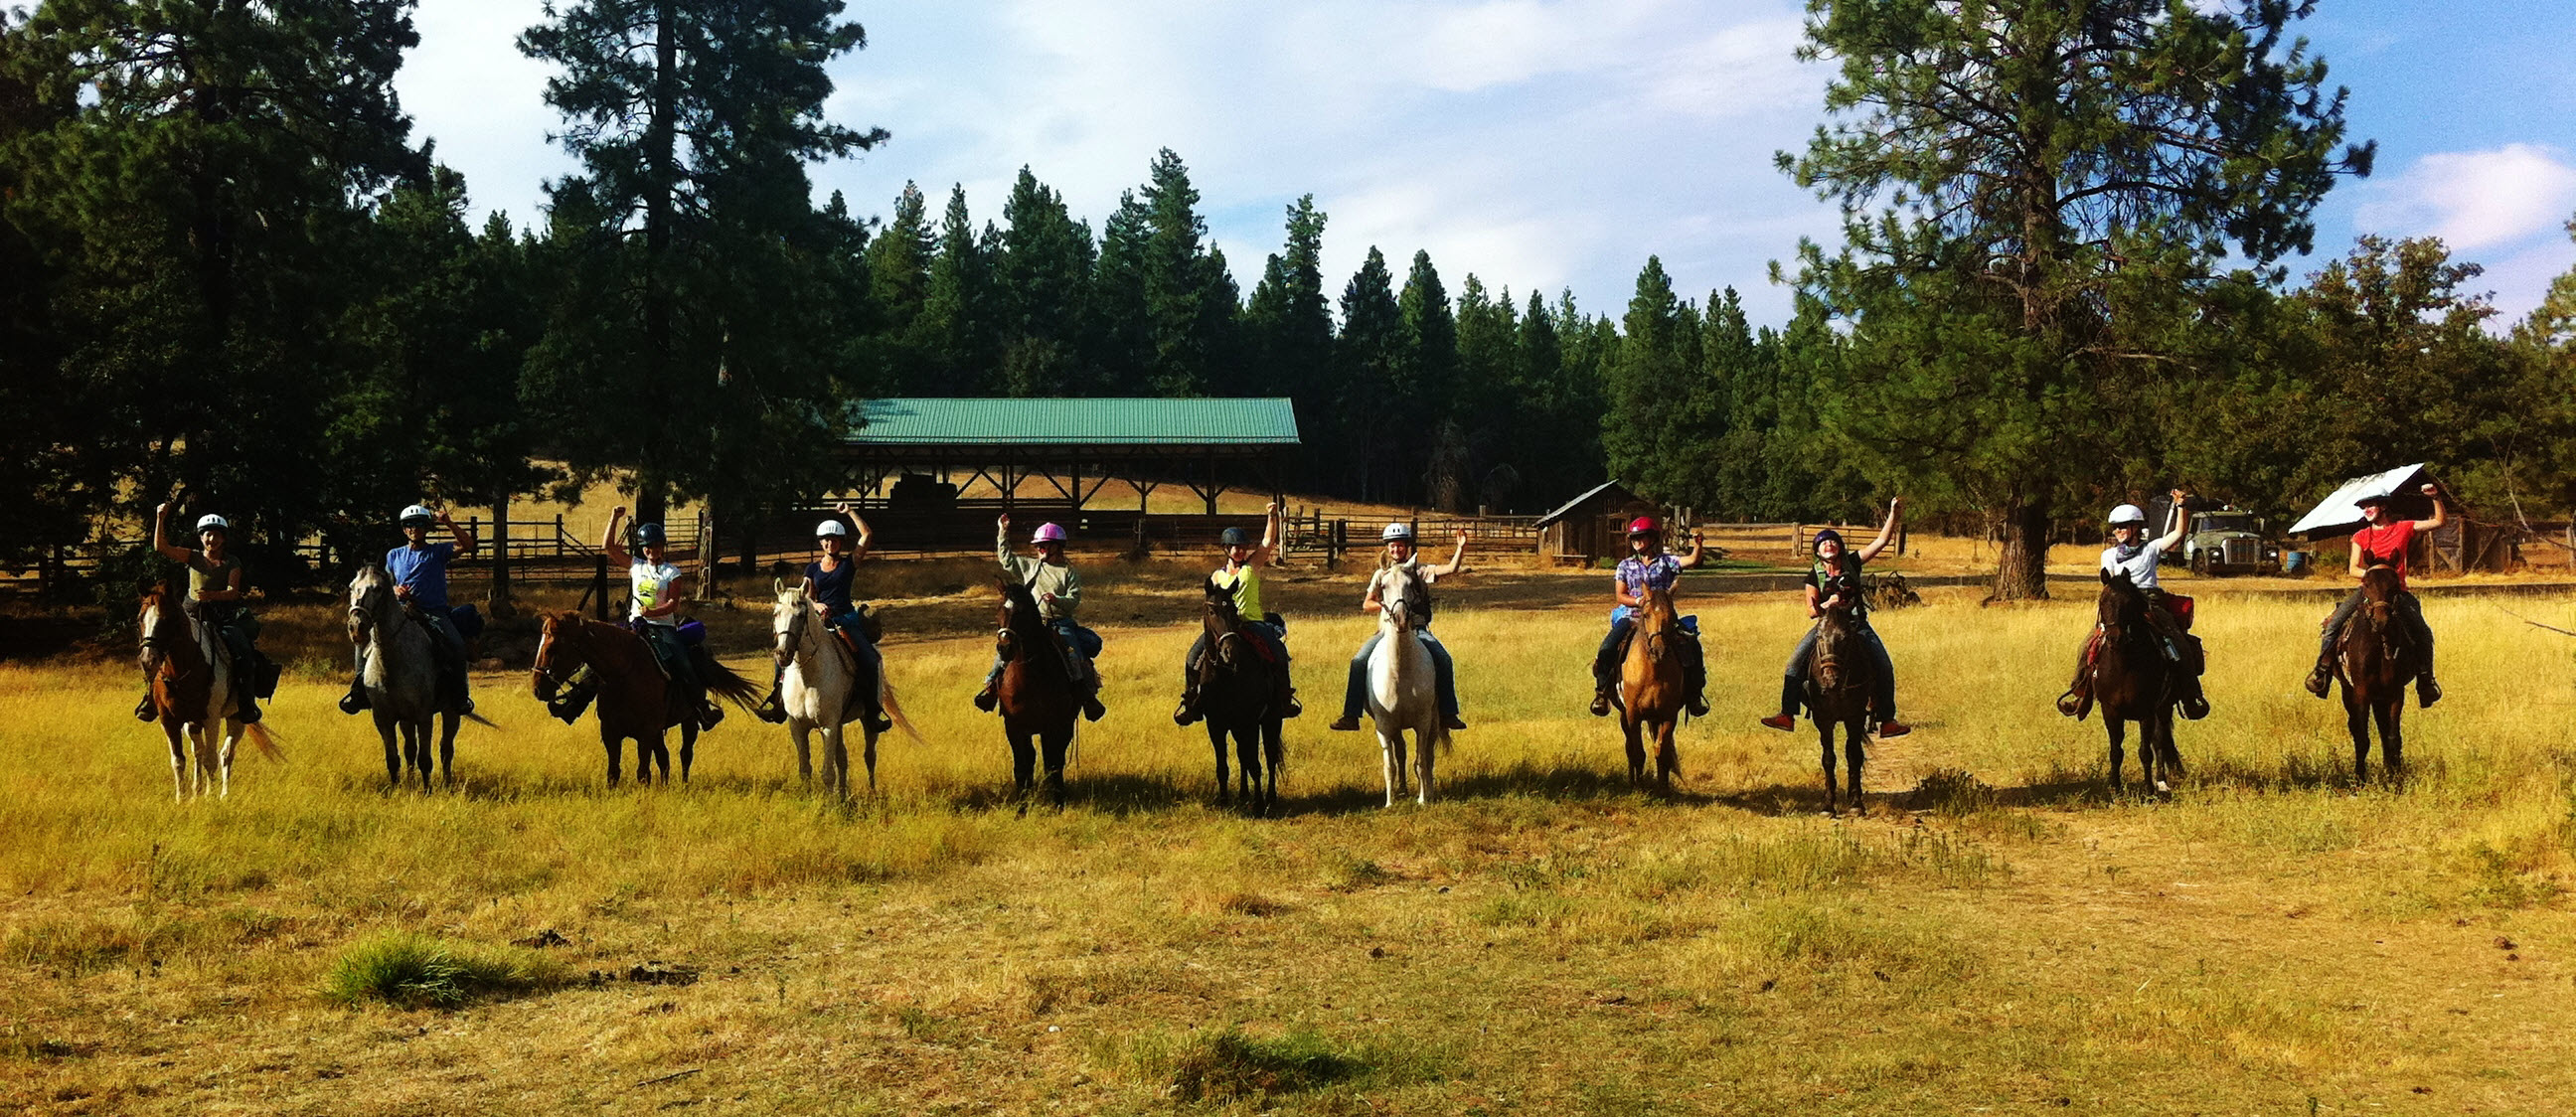 finding a great horse camp tips and horse camps in greater tips for picking a great summer camp